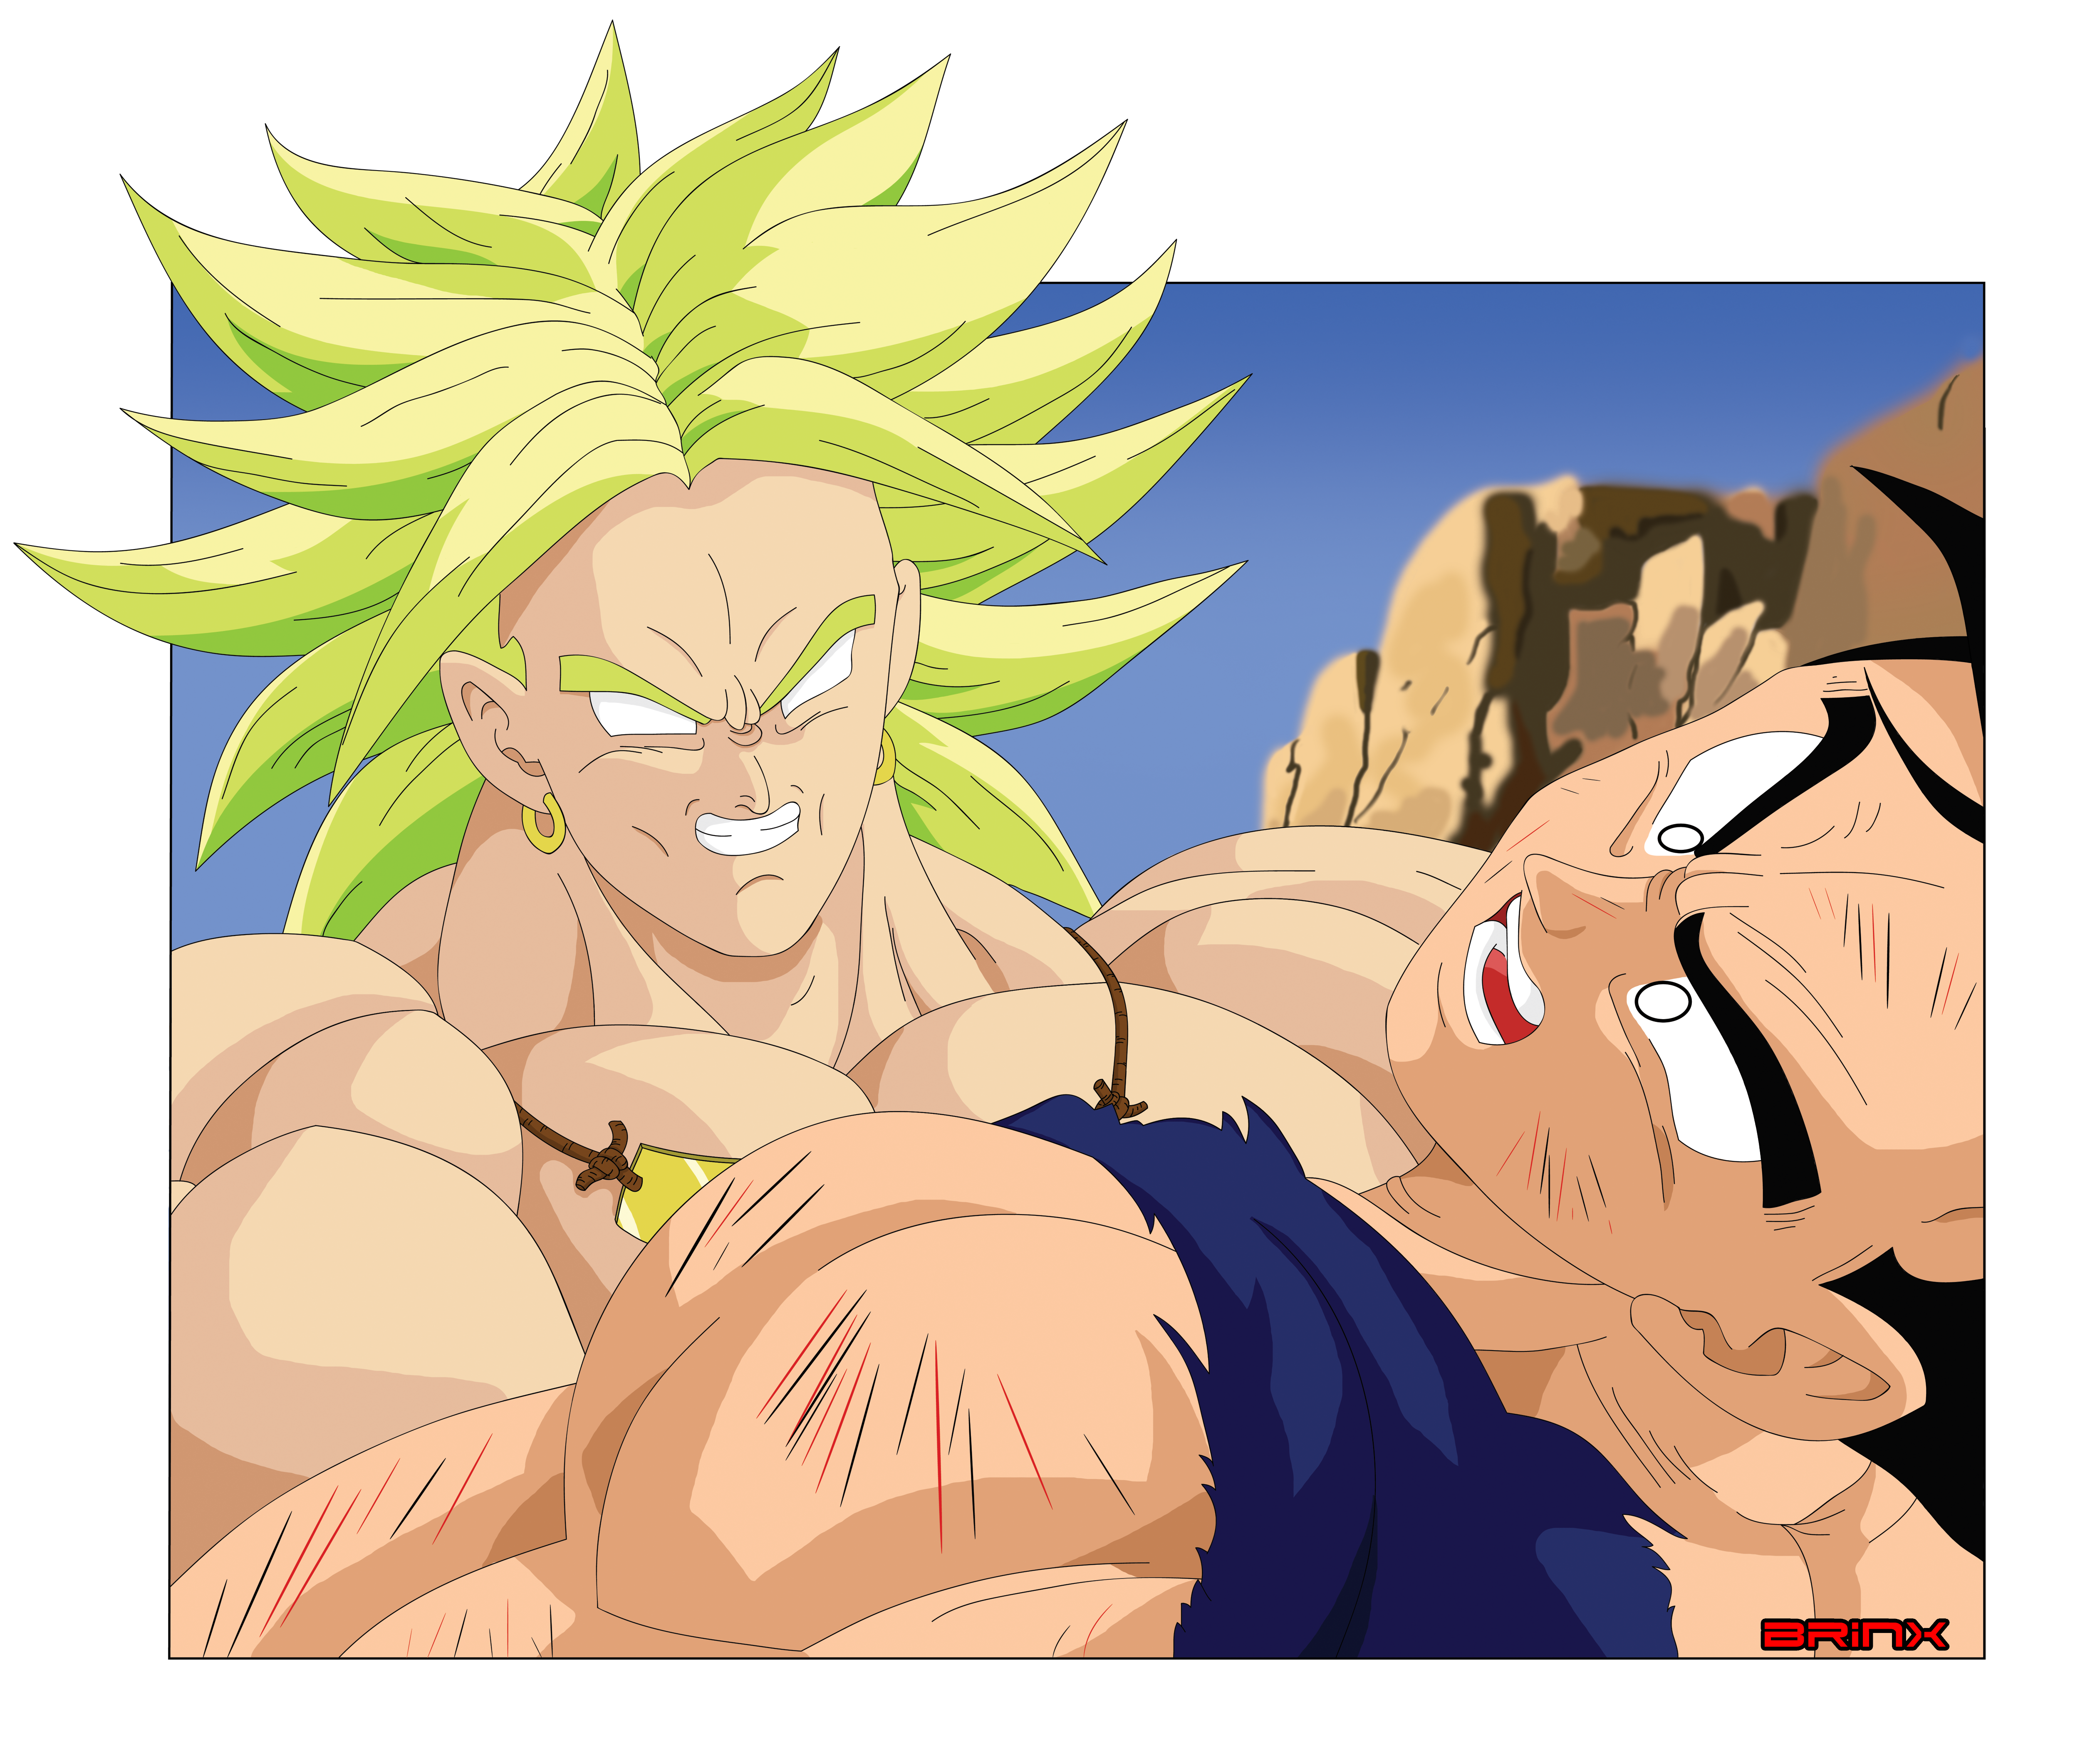 LSSJ Broly putting the squeeze on Gohan by Brinx-dragonball